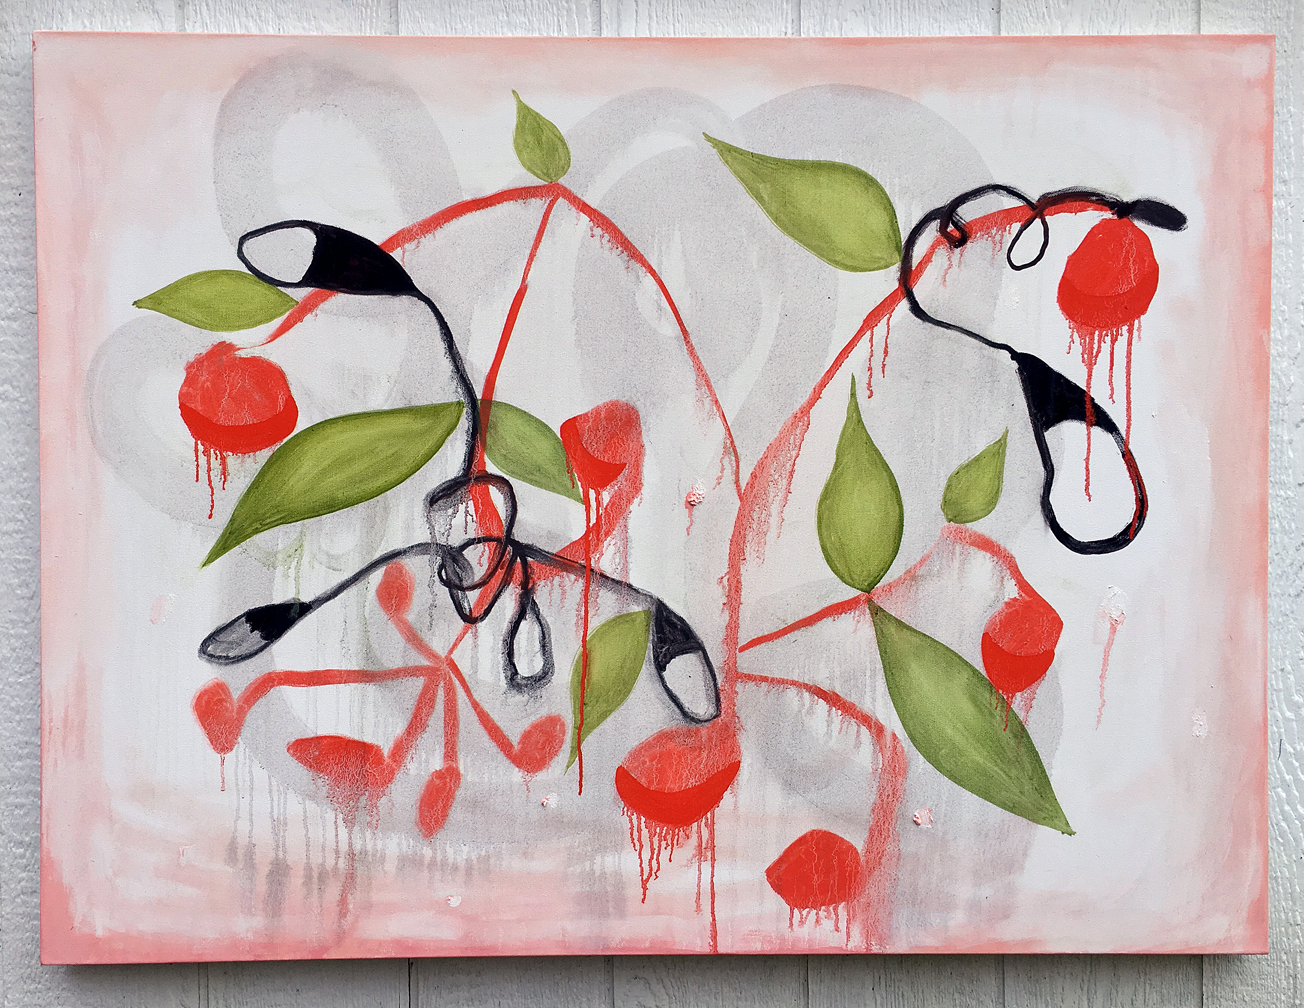 Pod-20181028-48w-01-red-leaves-14h